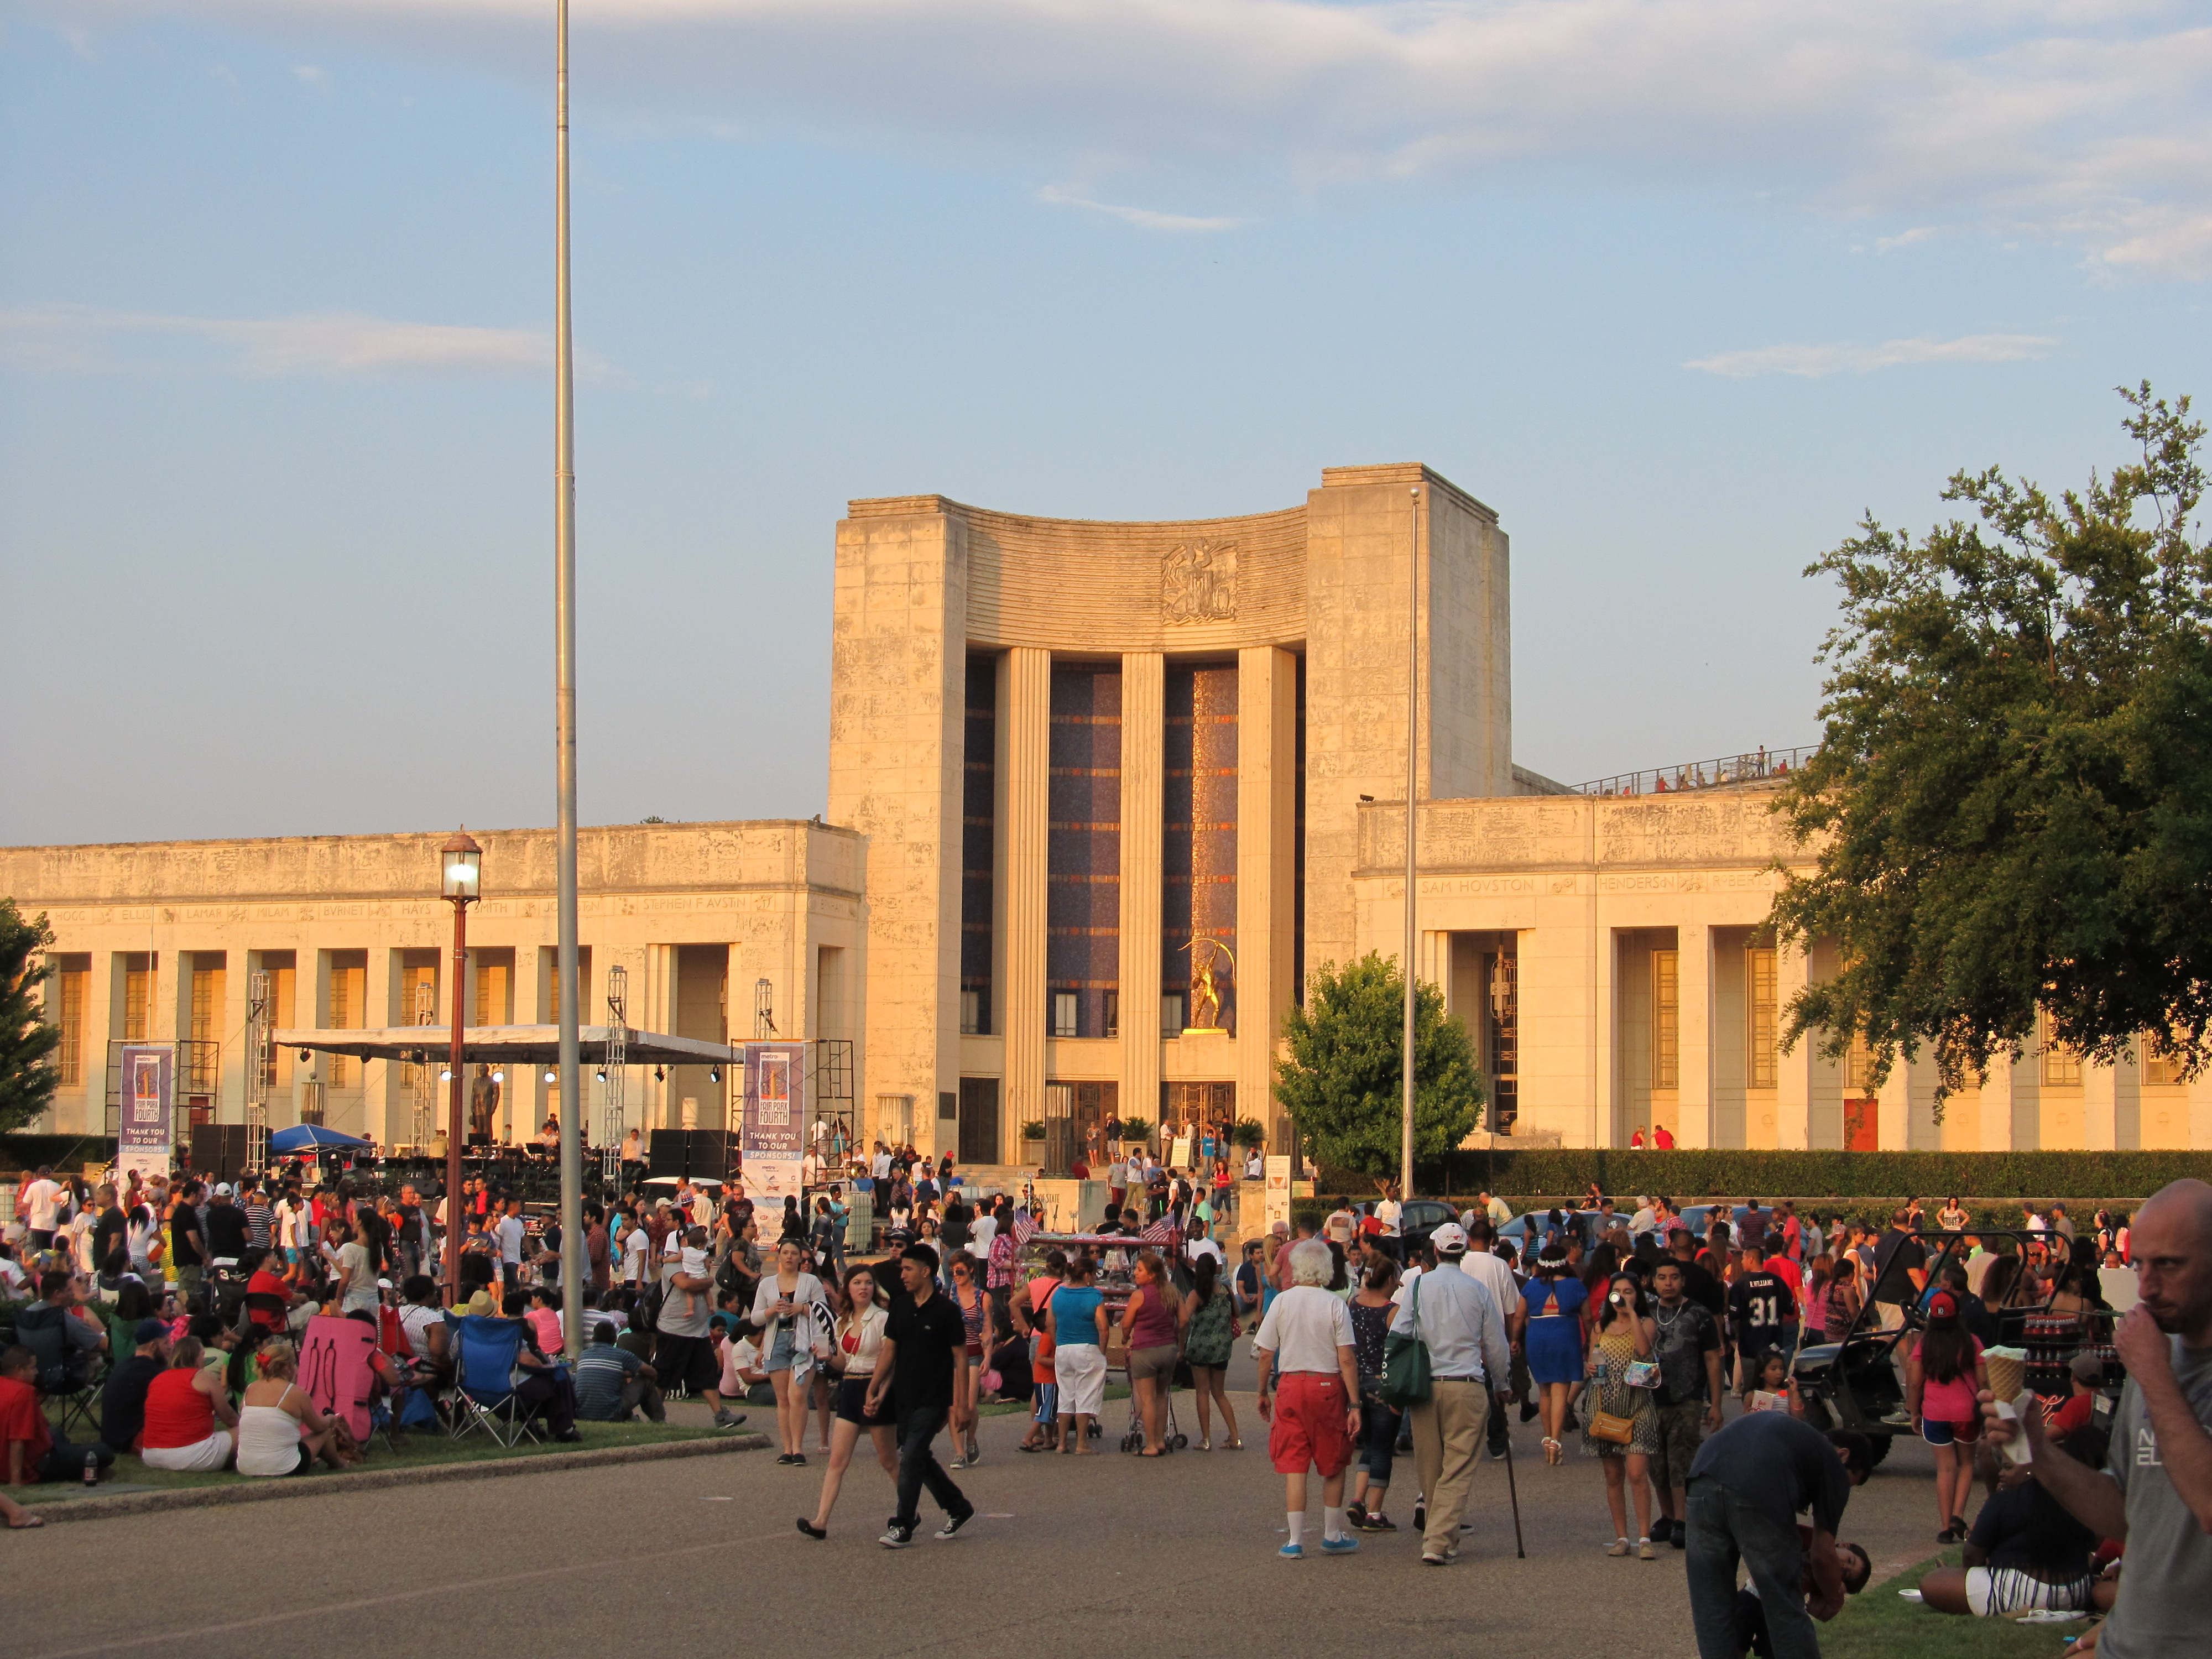 people gathering in front of the Hall of State